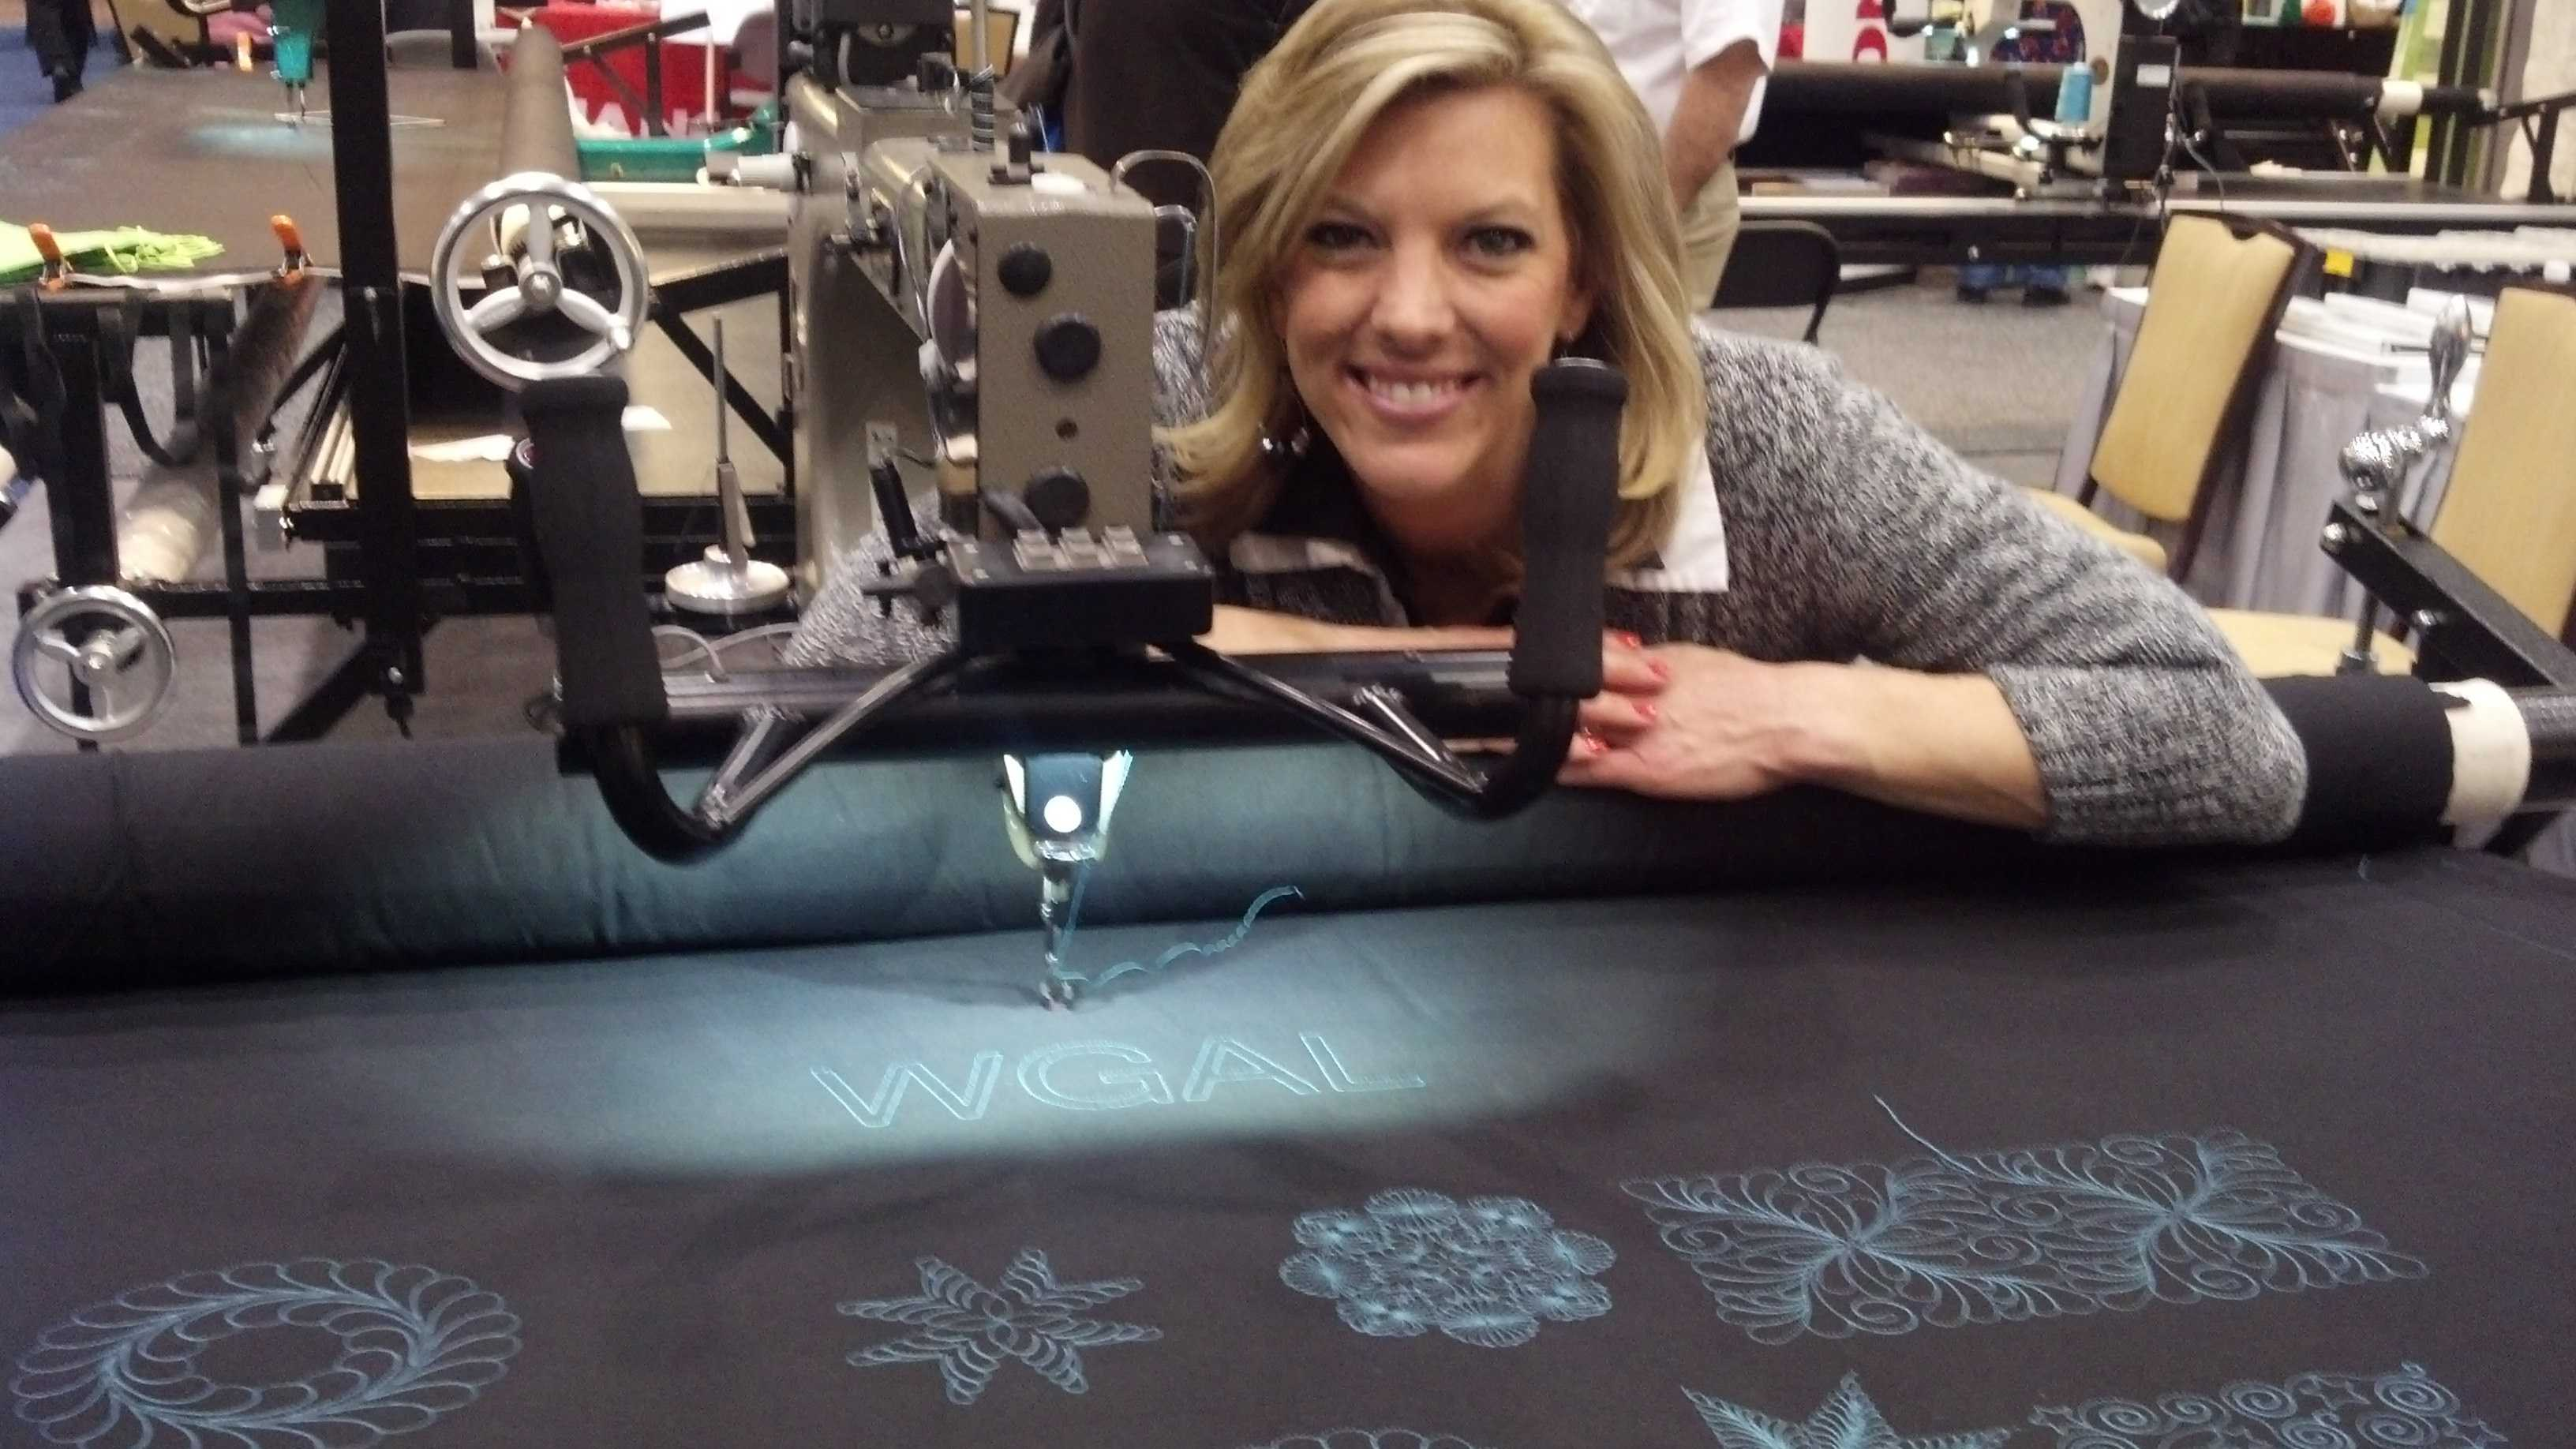 3.13.14 quilting pic